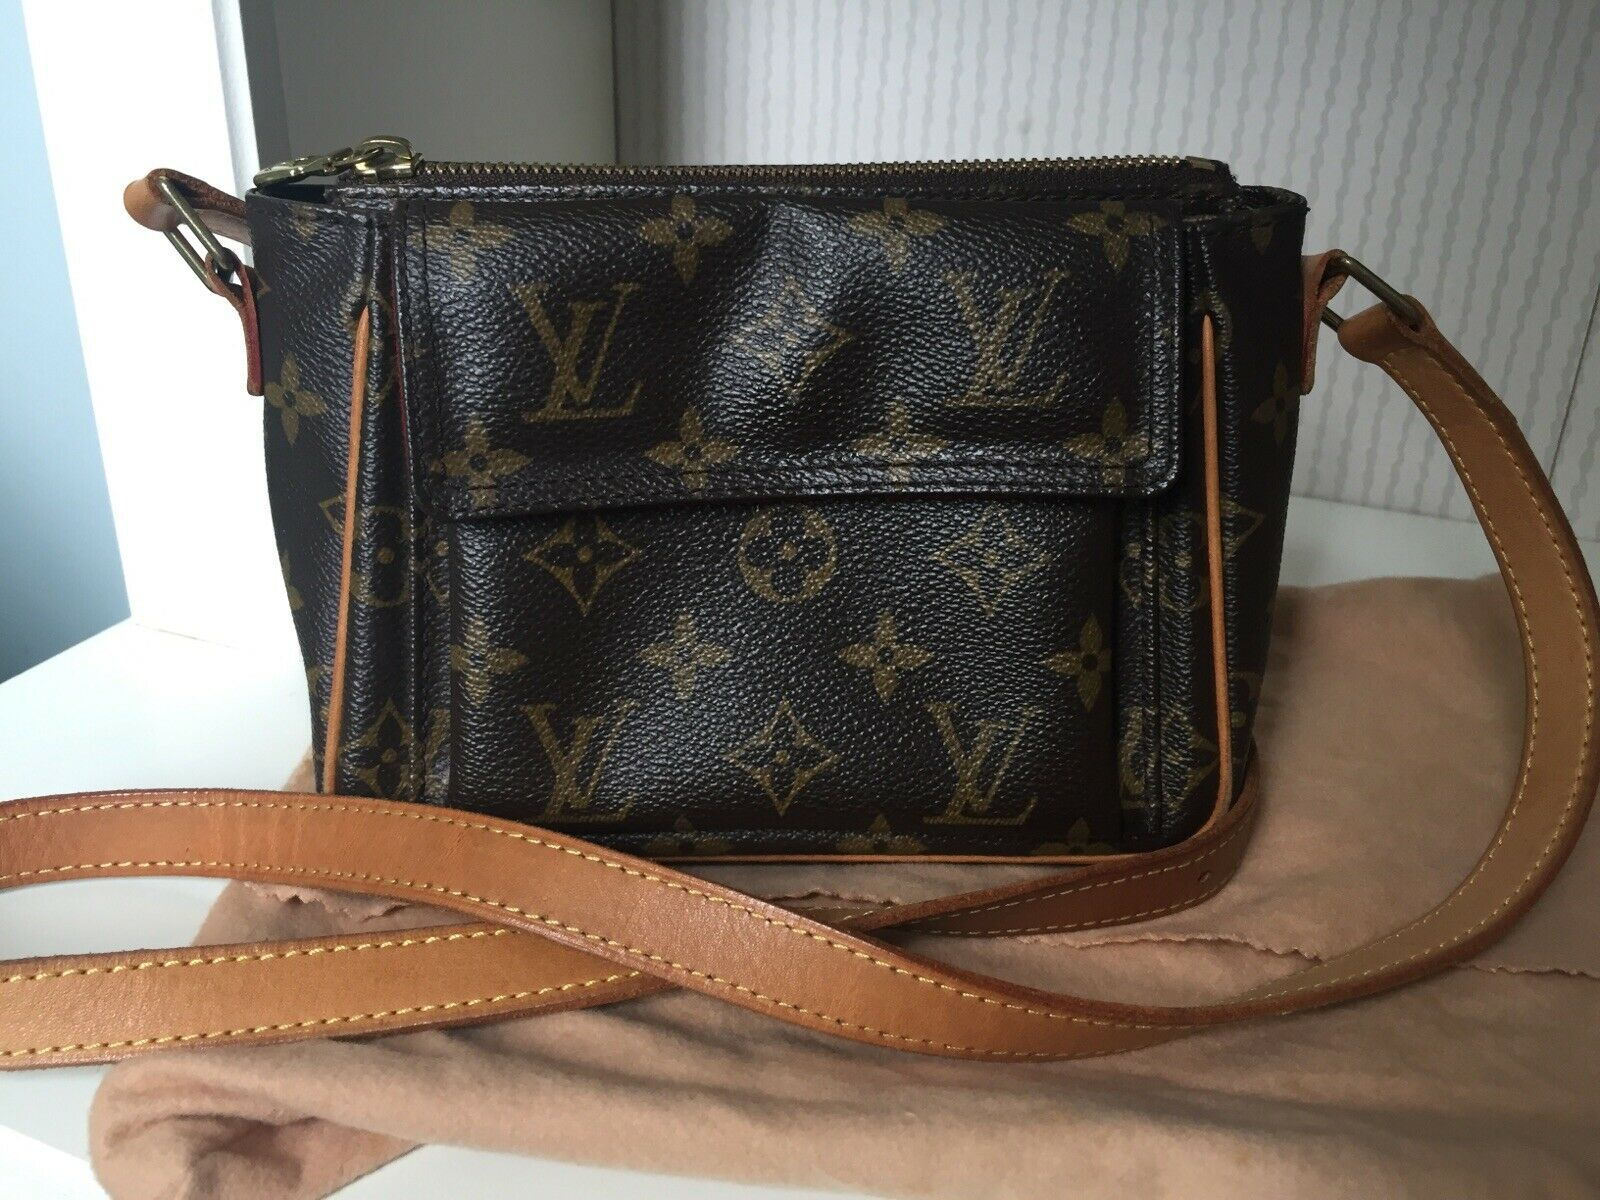 Authentic Louis Vuitton Monogram Viva Cite PM Schultertasche - 715.08,Kaufpreis 715,08,datum 01.07.2020 22:12:38,Website ebay.de